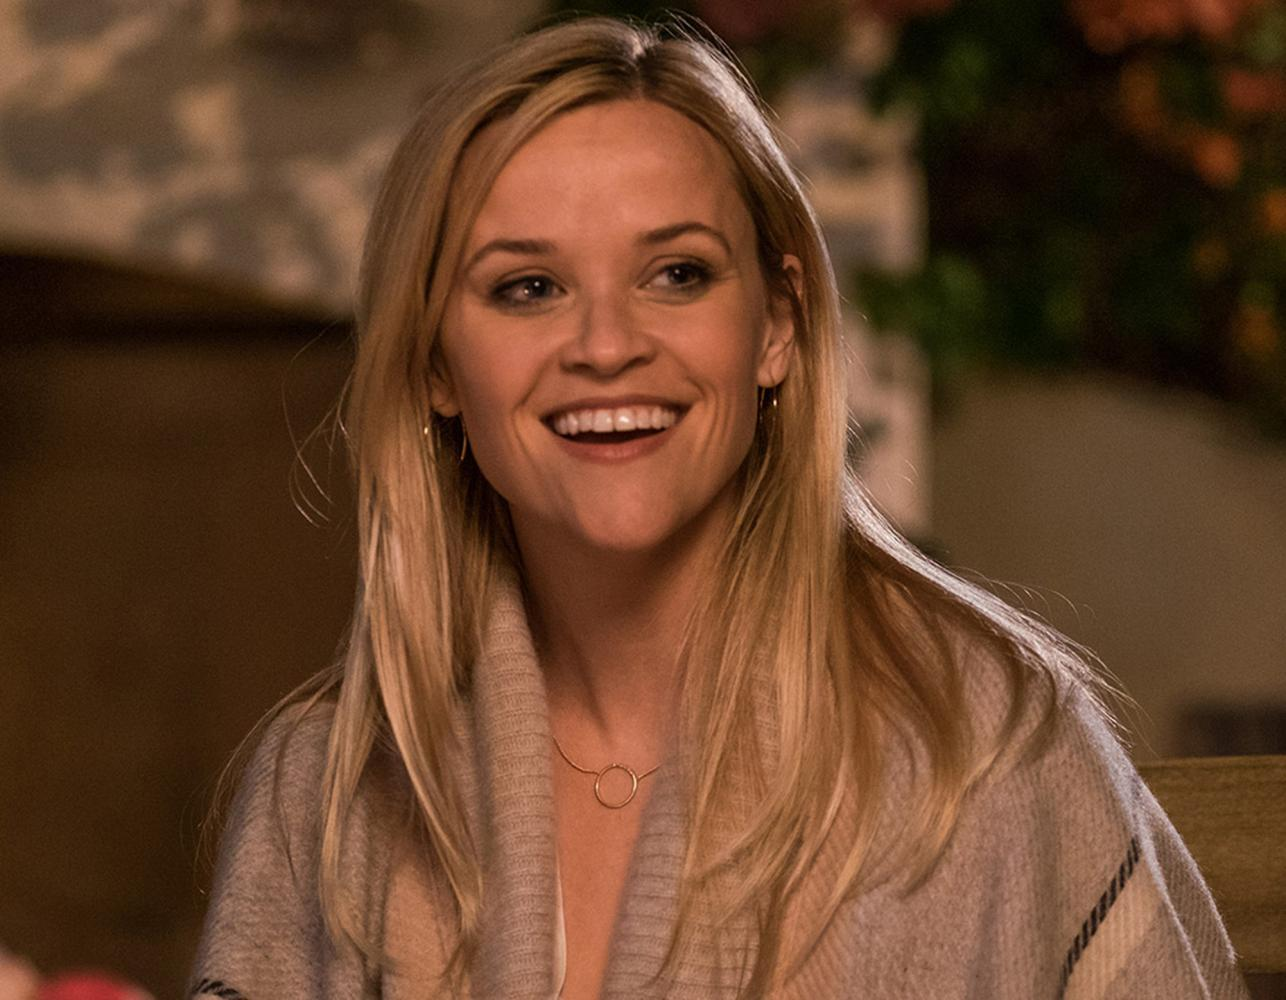 Reese Witherspoon stars in the new romantic comedy